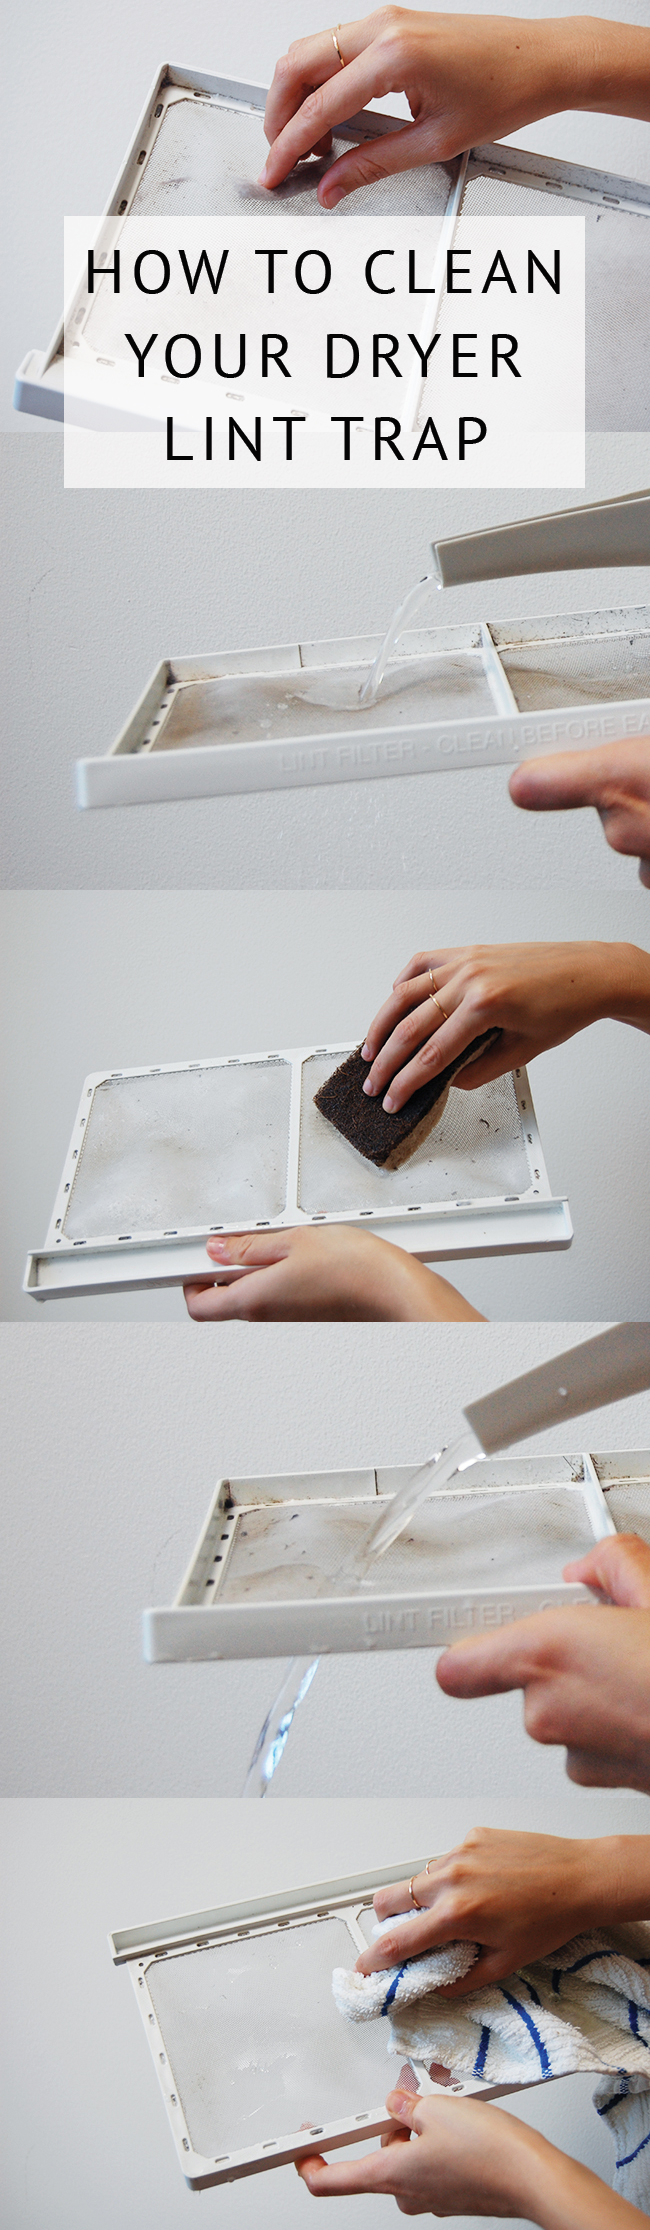 Easy dryer lint trap cleaning how-to - clean regularly to avoid a fire hazard!